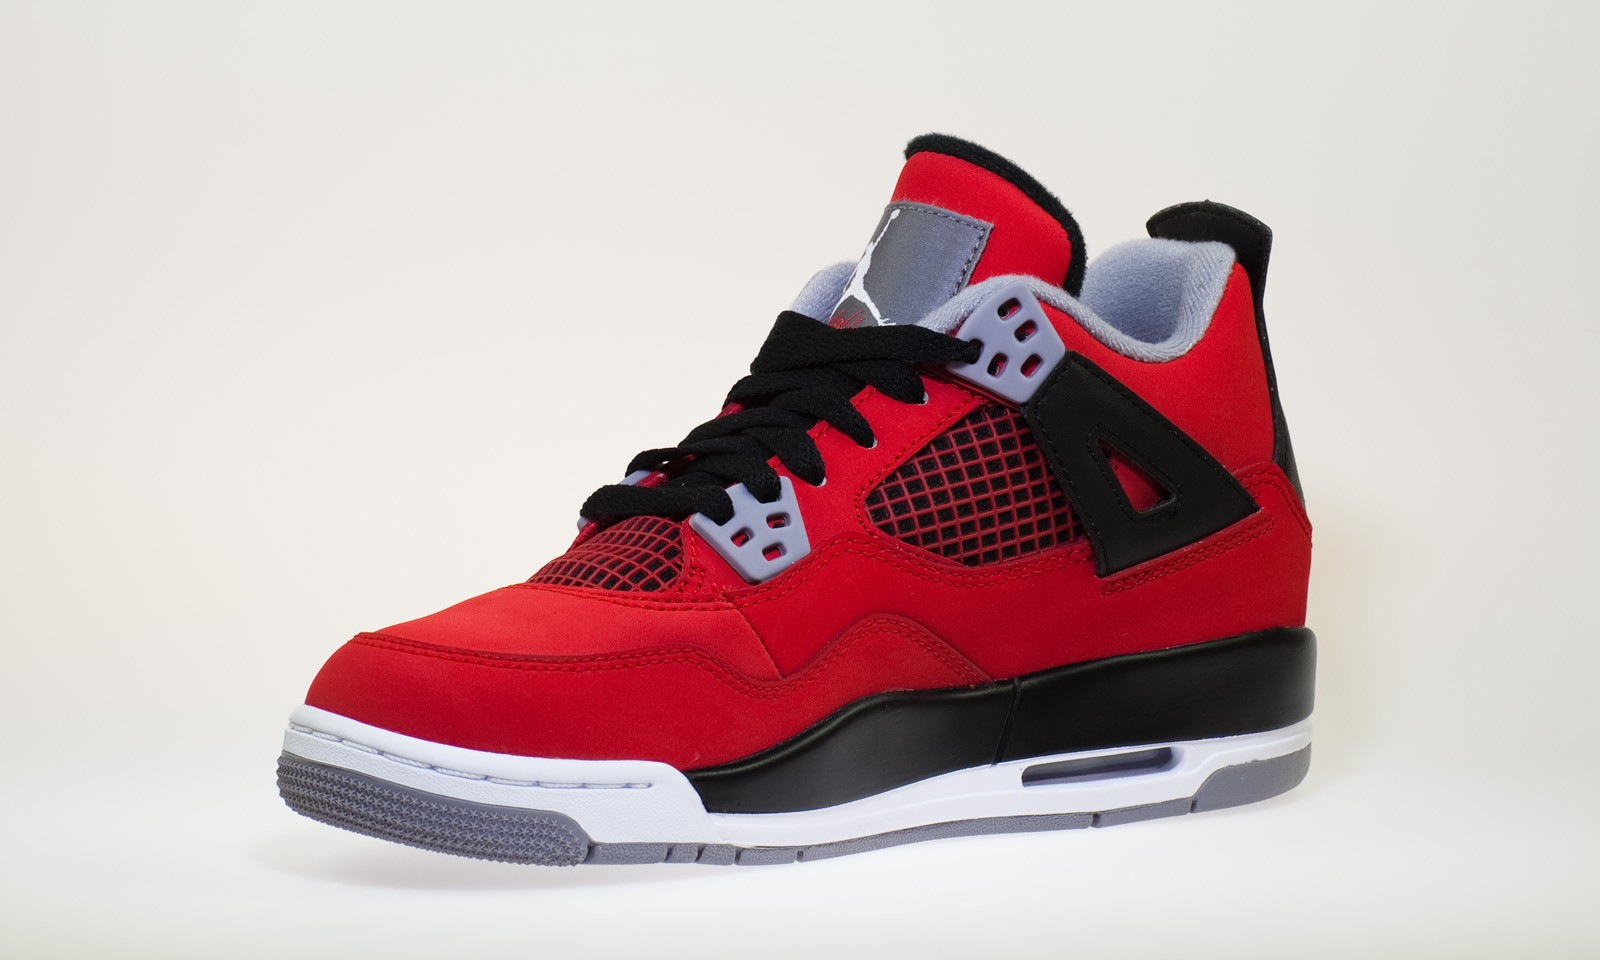 nike air jordan 4 retro gs. Black Bedroom Furniture Sets. Home Design Ideas